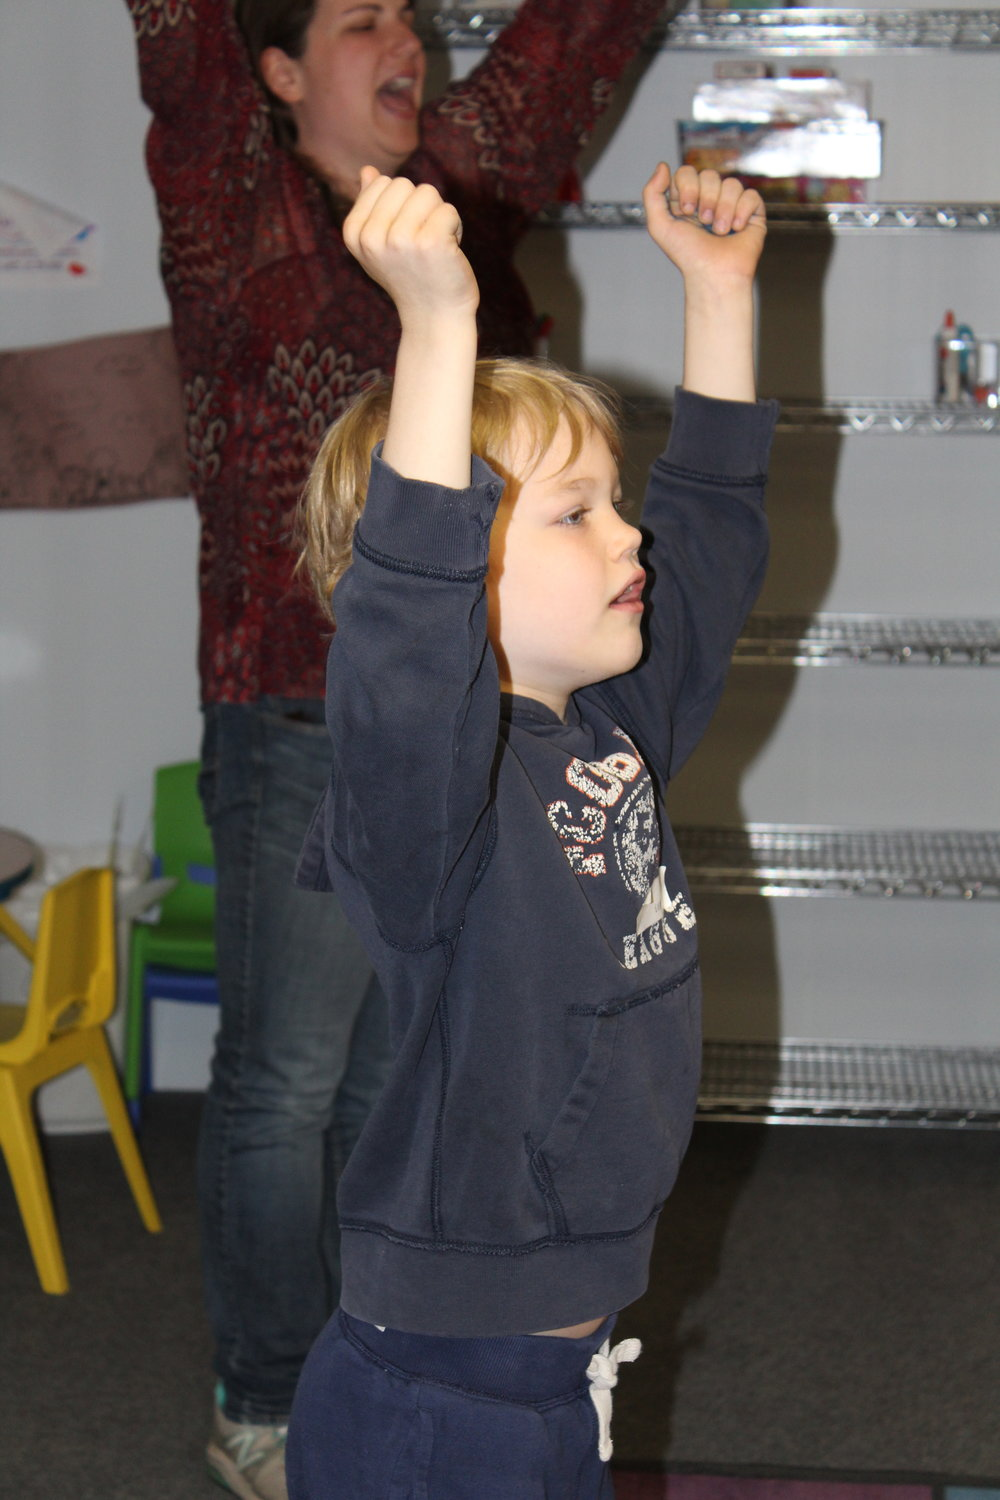 Energetic Worship  - This is a vital part of the kids worship experience as we energetically worship (singing songs to God and about God). Many times what's spoken is forgotten, but the songs fill our minds through the week.